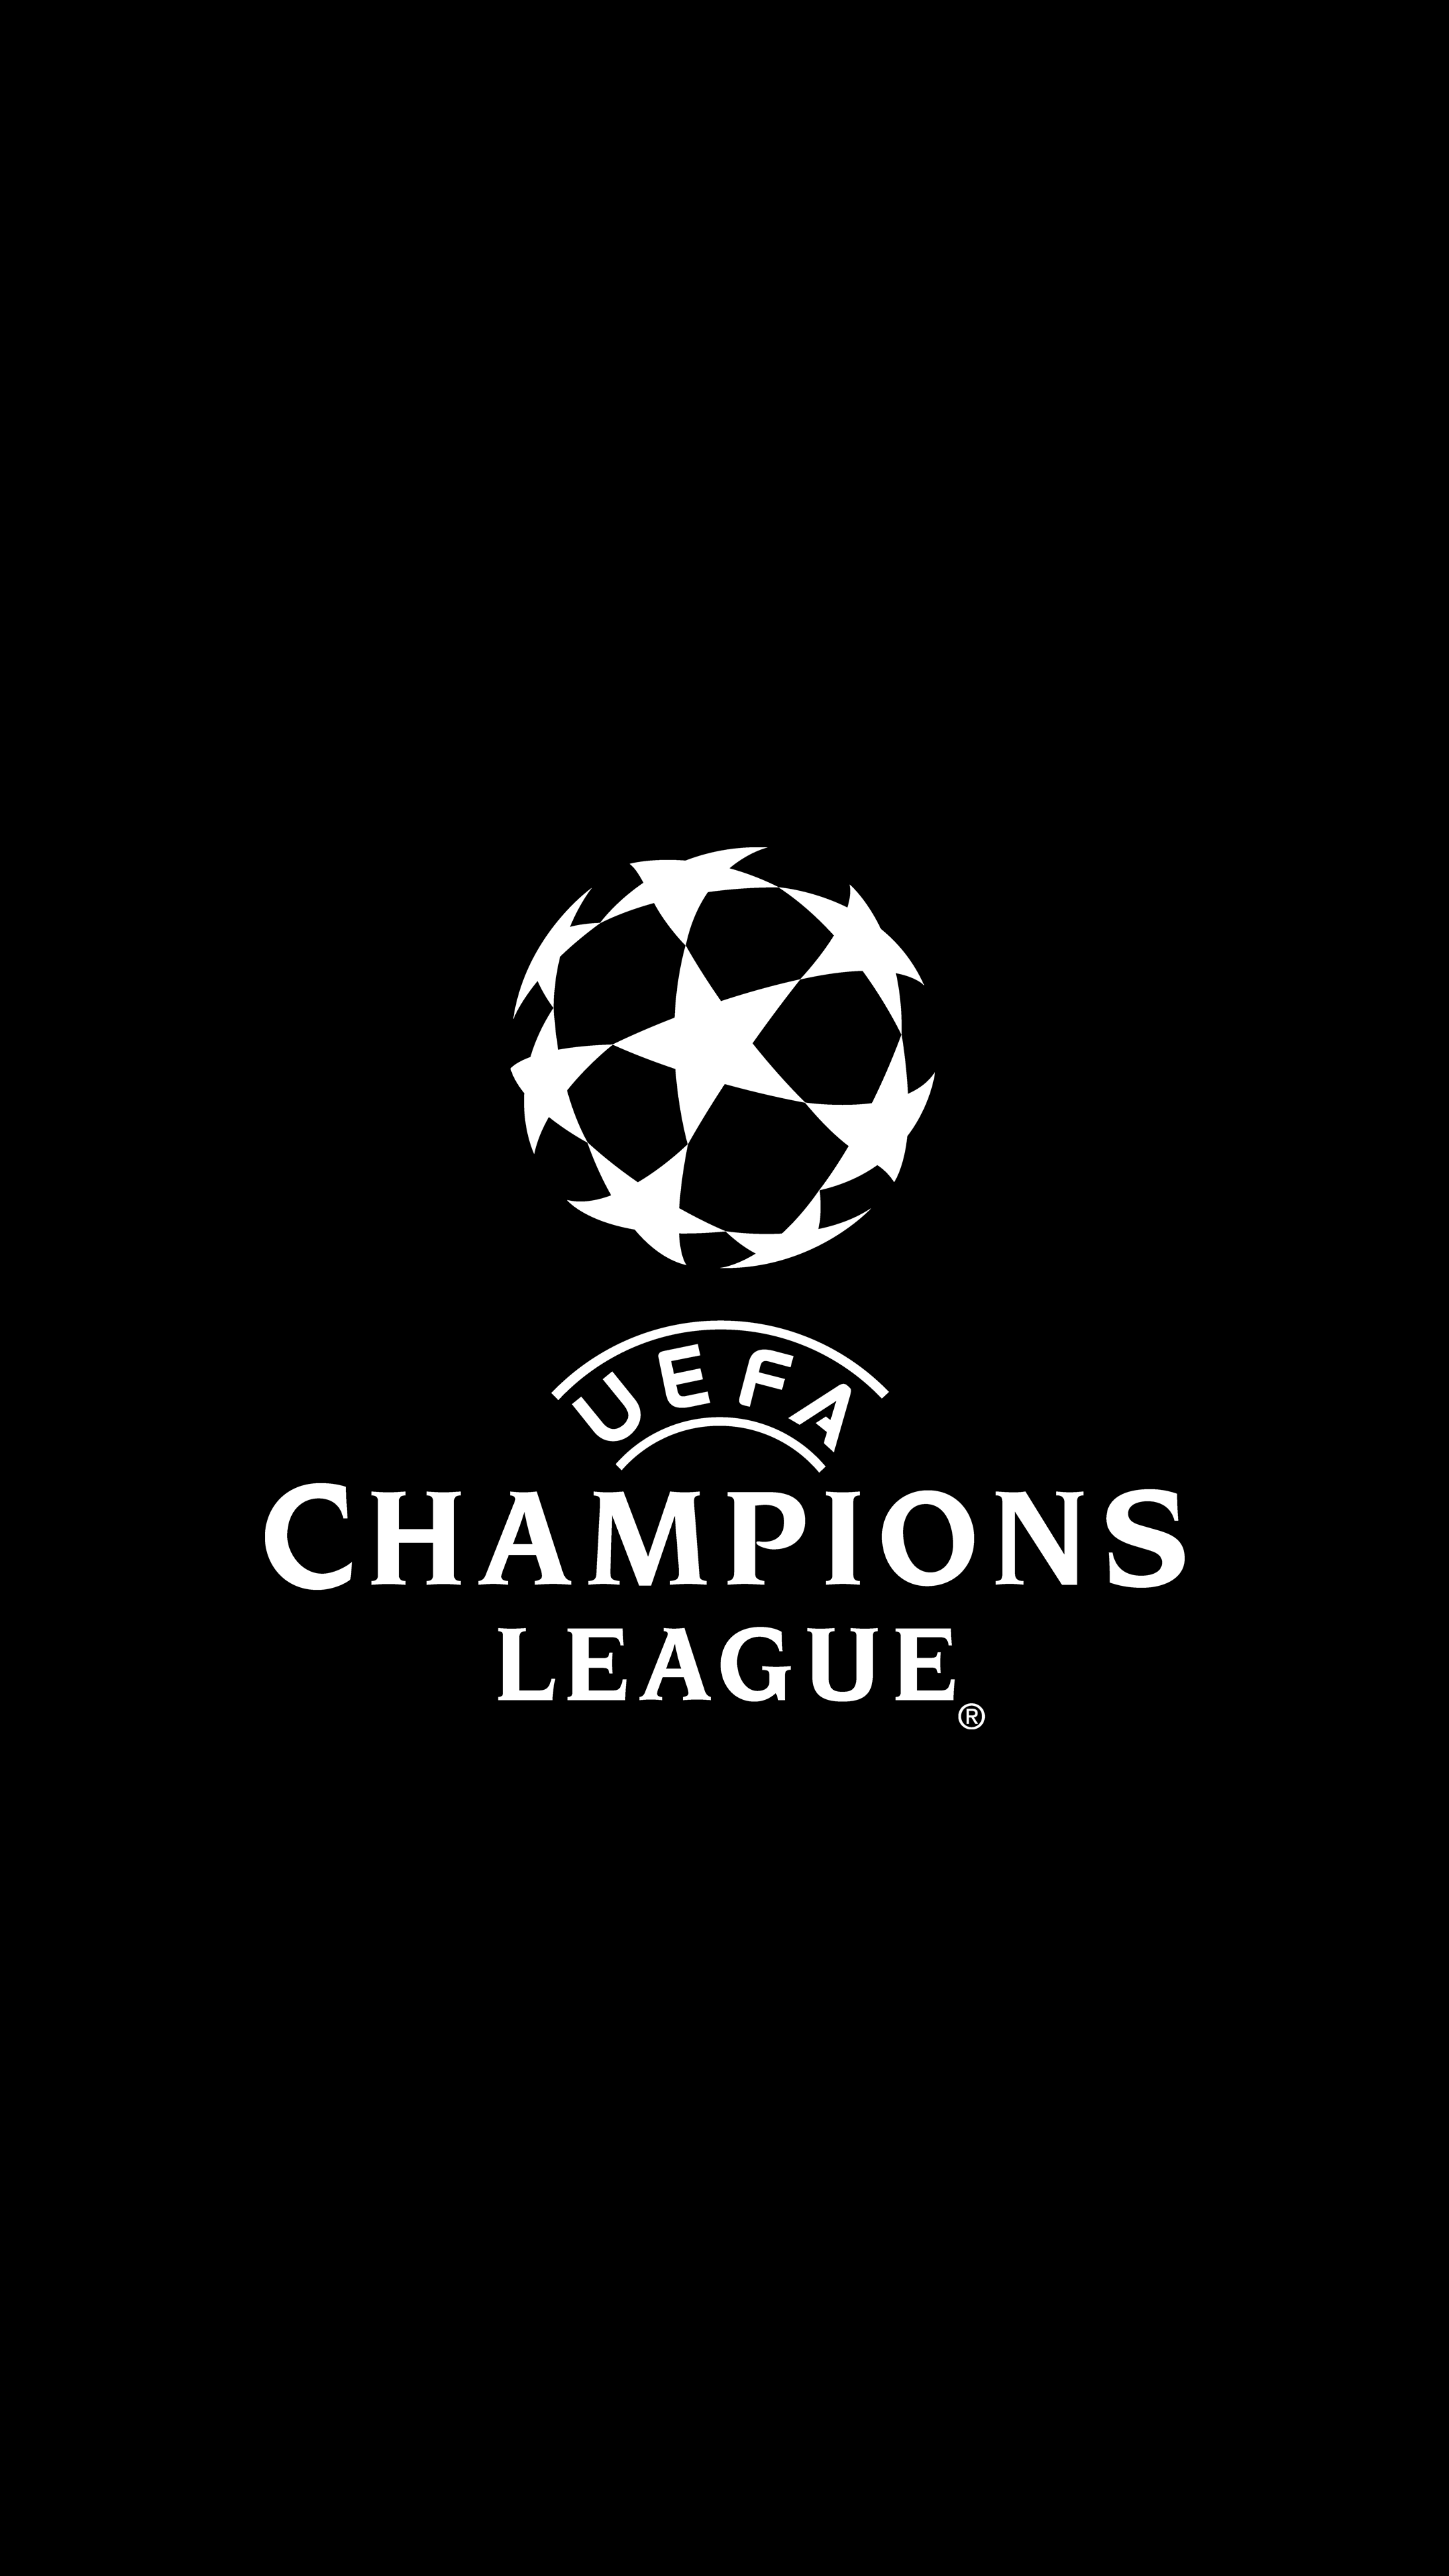 Uefa Champions League 2160p4k Oled Wallpaper Fondos De